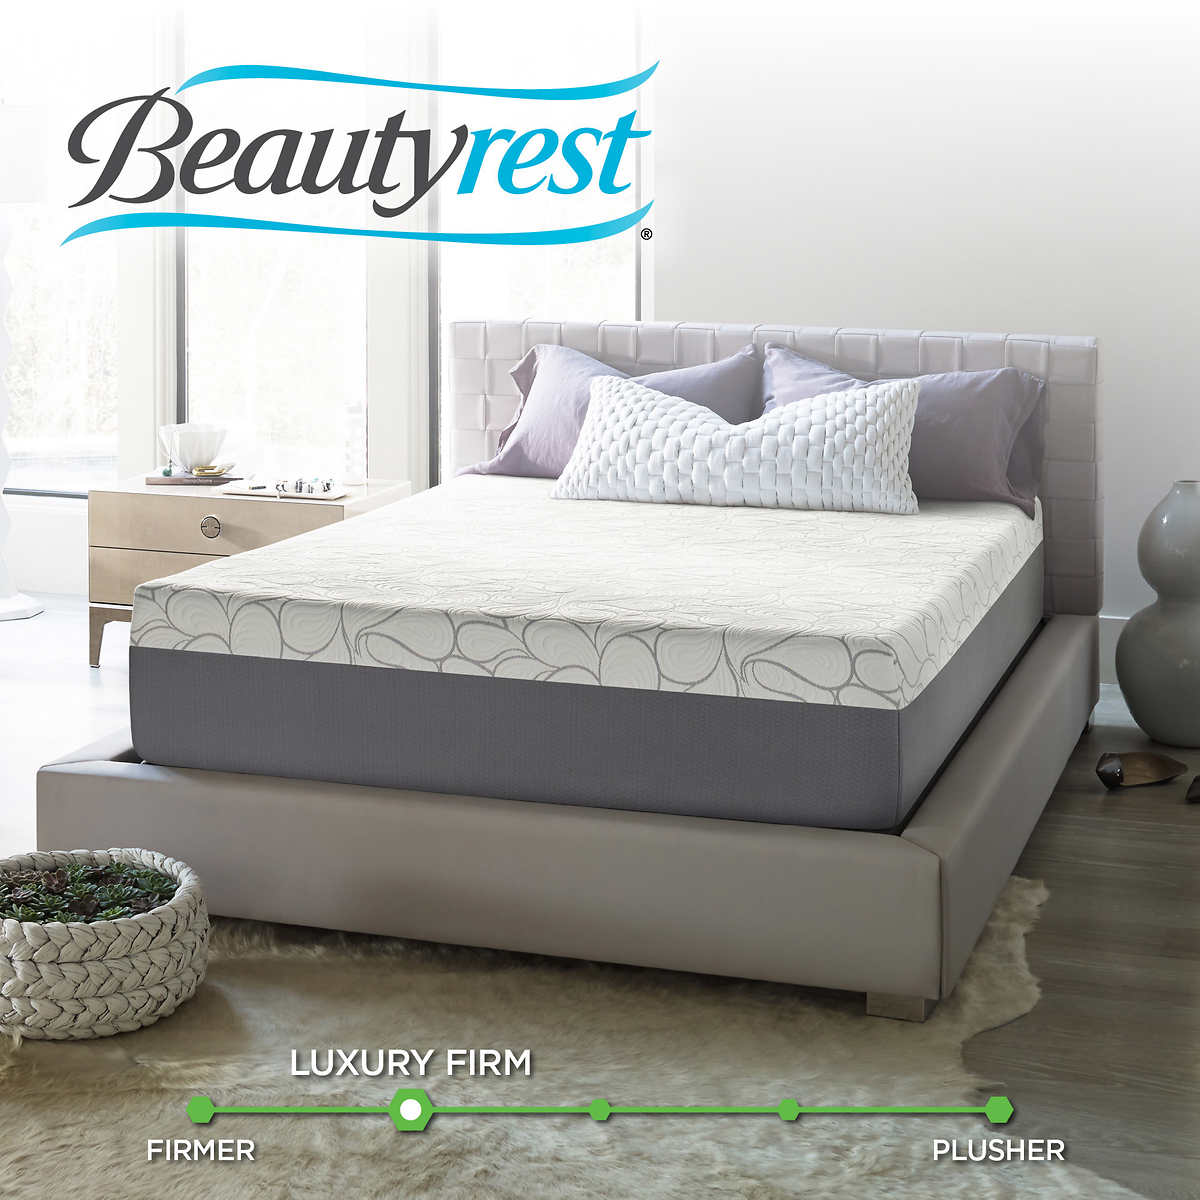 Simmons Beautyrest Mattress | Beautyrest Recharge Shakespeare | Warranty On Simmons Beautyrest Mattress